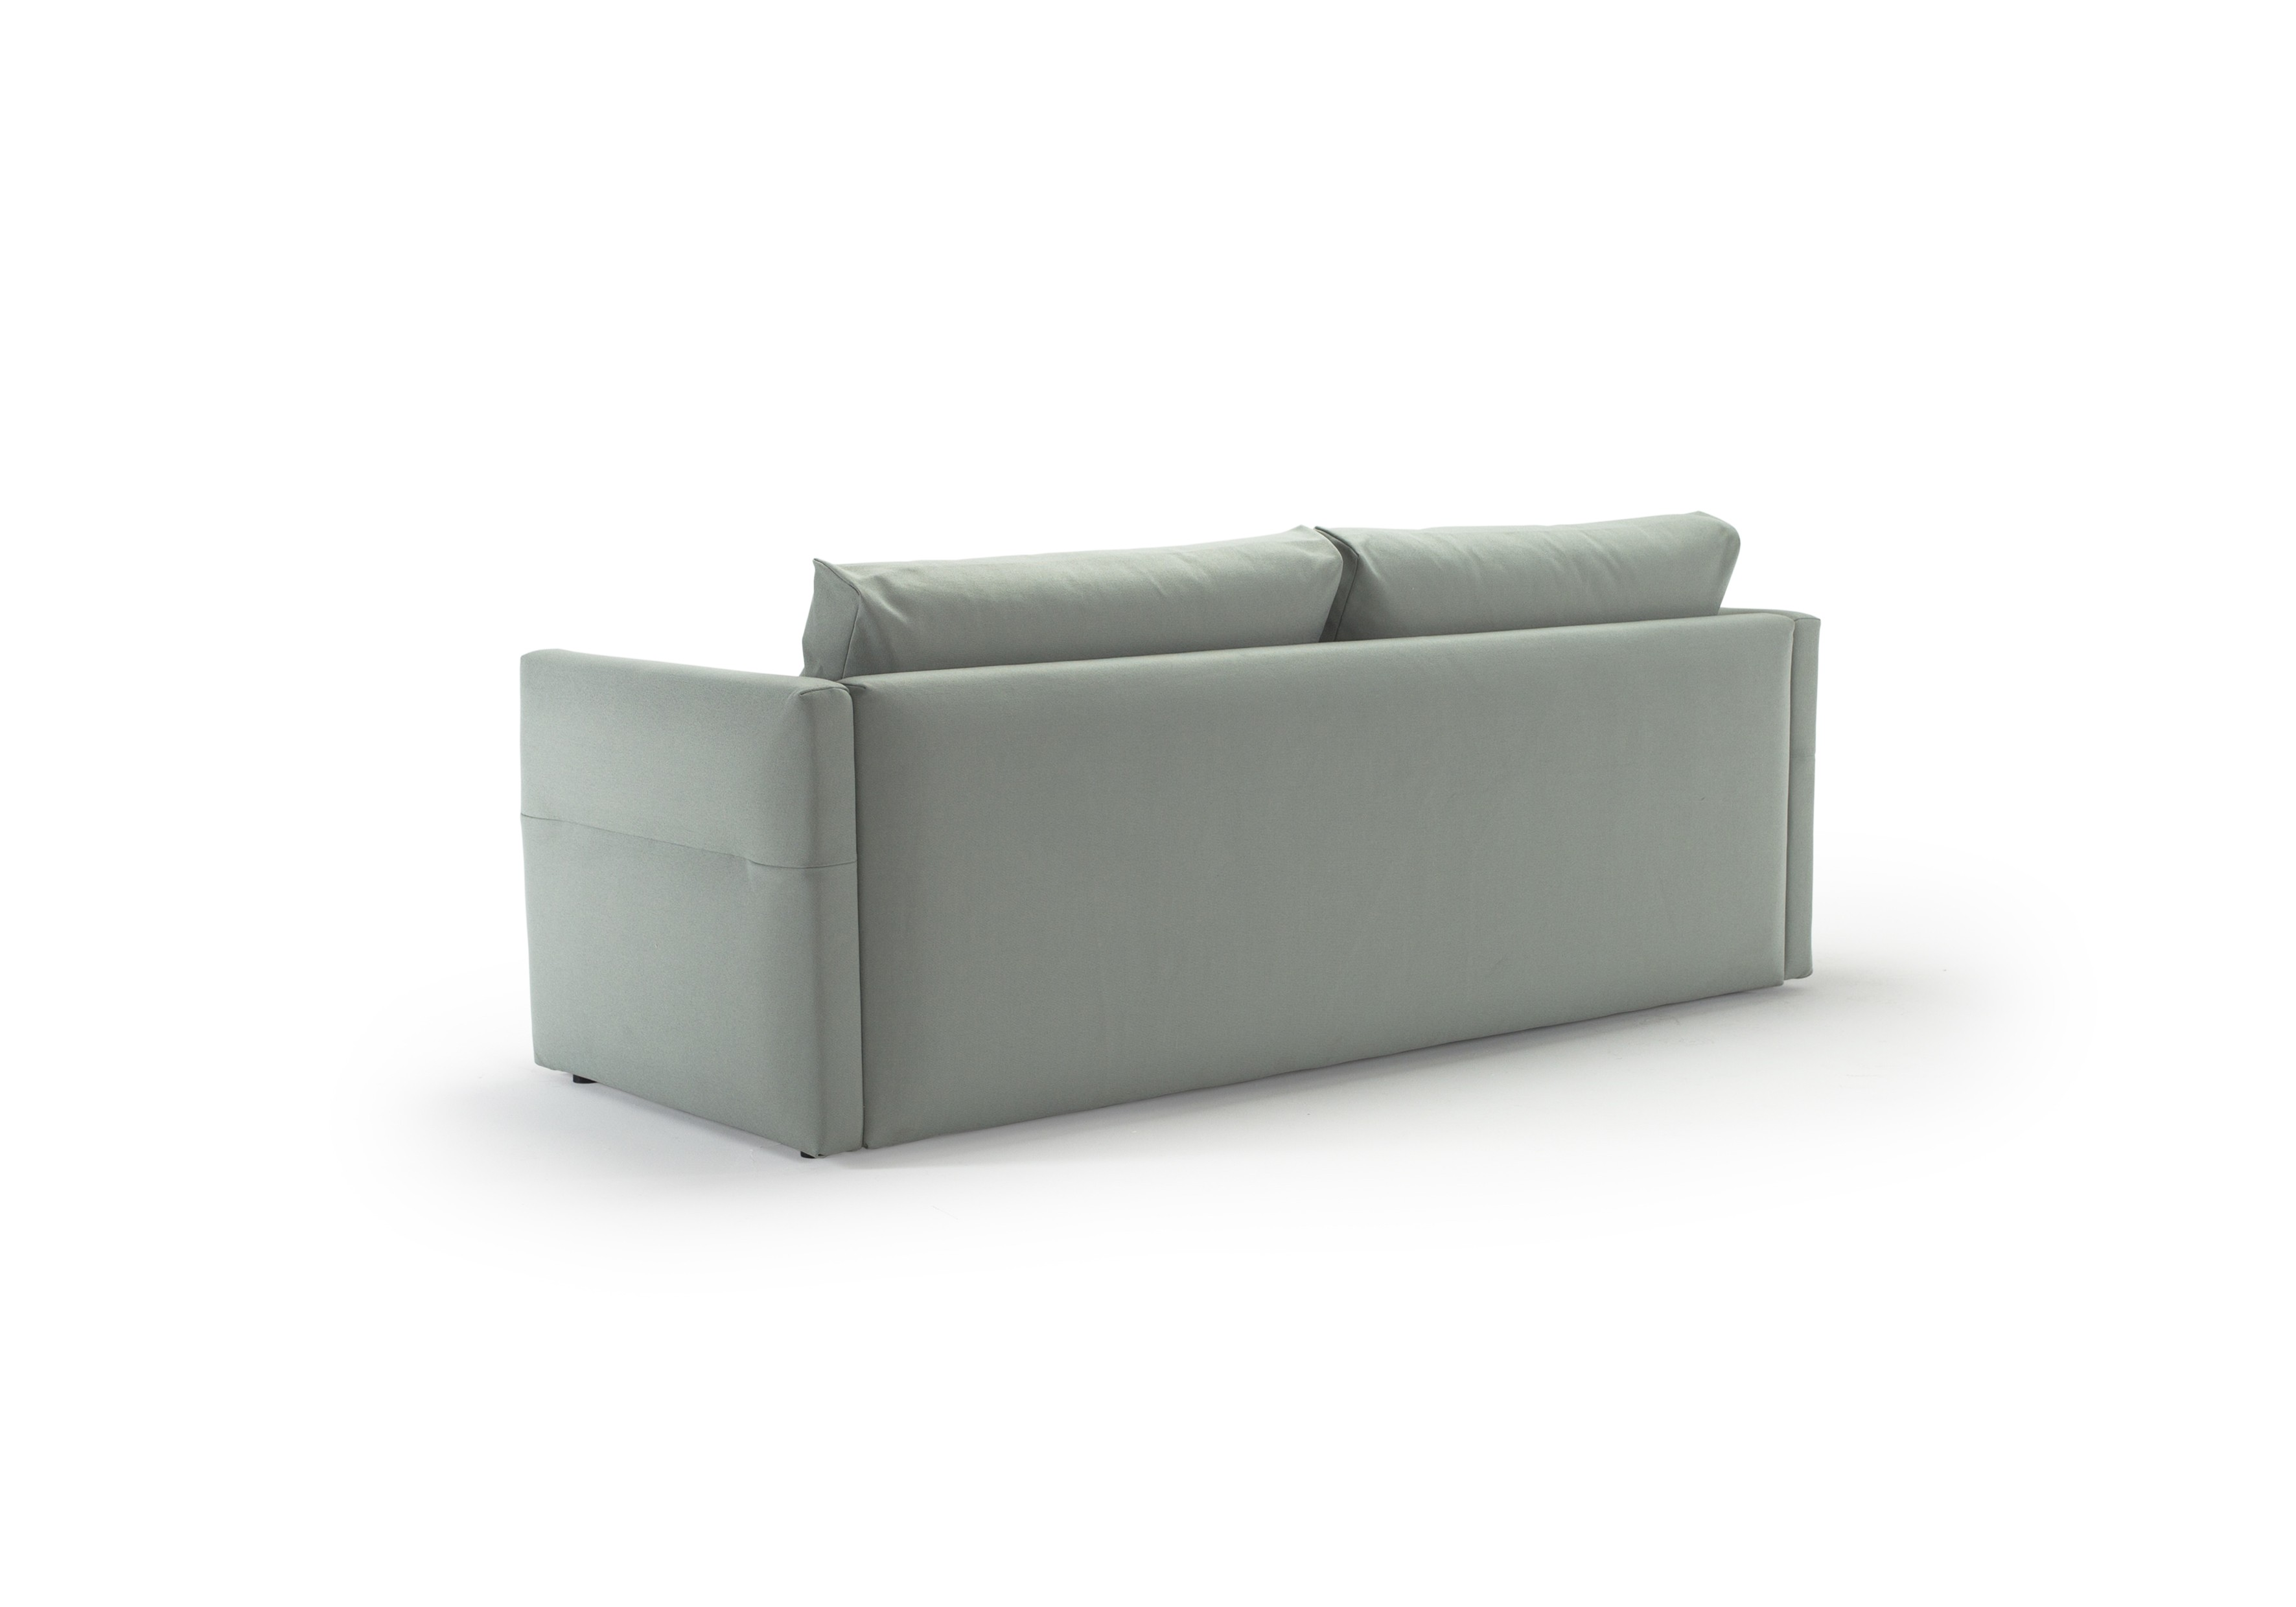 Full Size sofa Bed Cute toke sofa Bed Full Size Coastal nordic Sky by Innovation Wallpaper